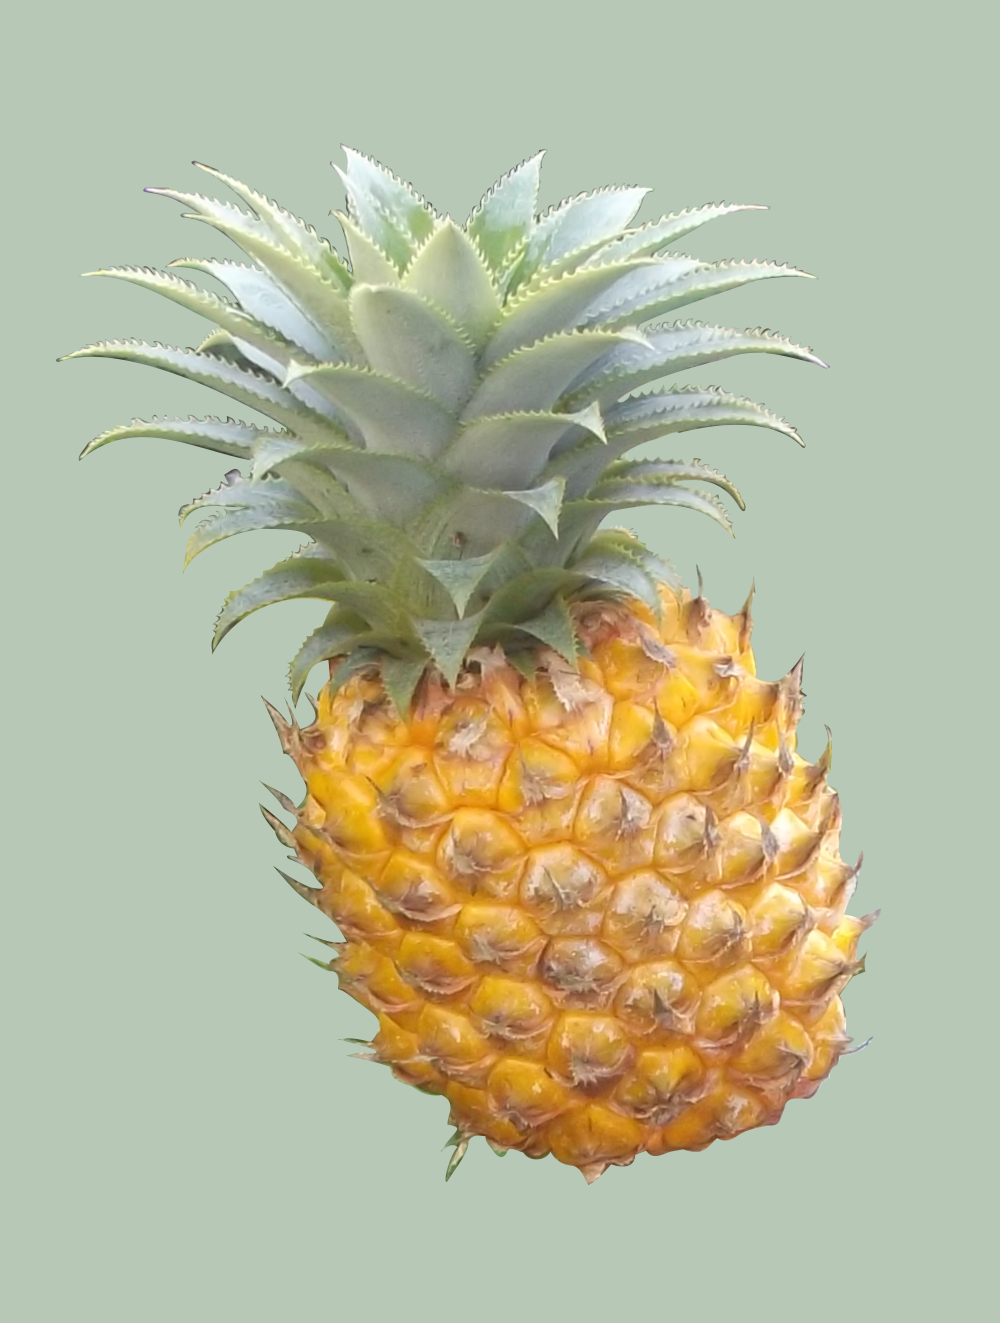 In addition to growing pineapples we make printable designs. This is our home grown pineapple prepared for printing on many items.